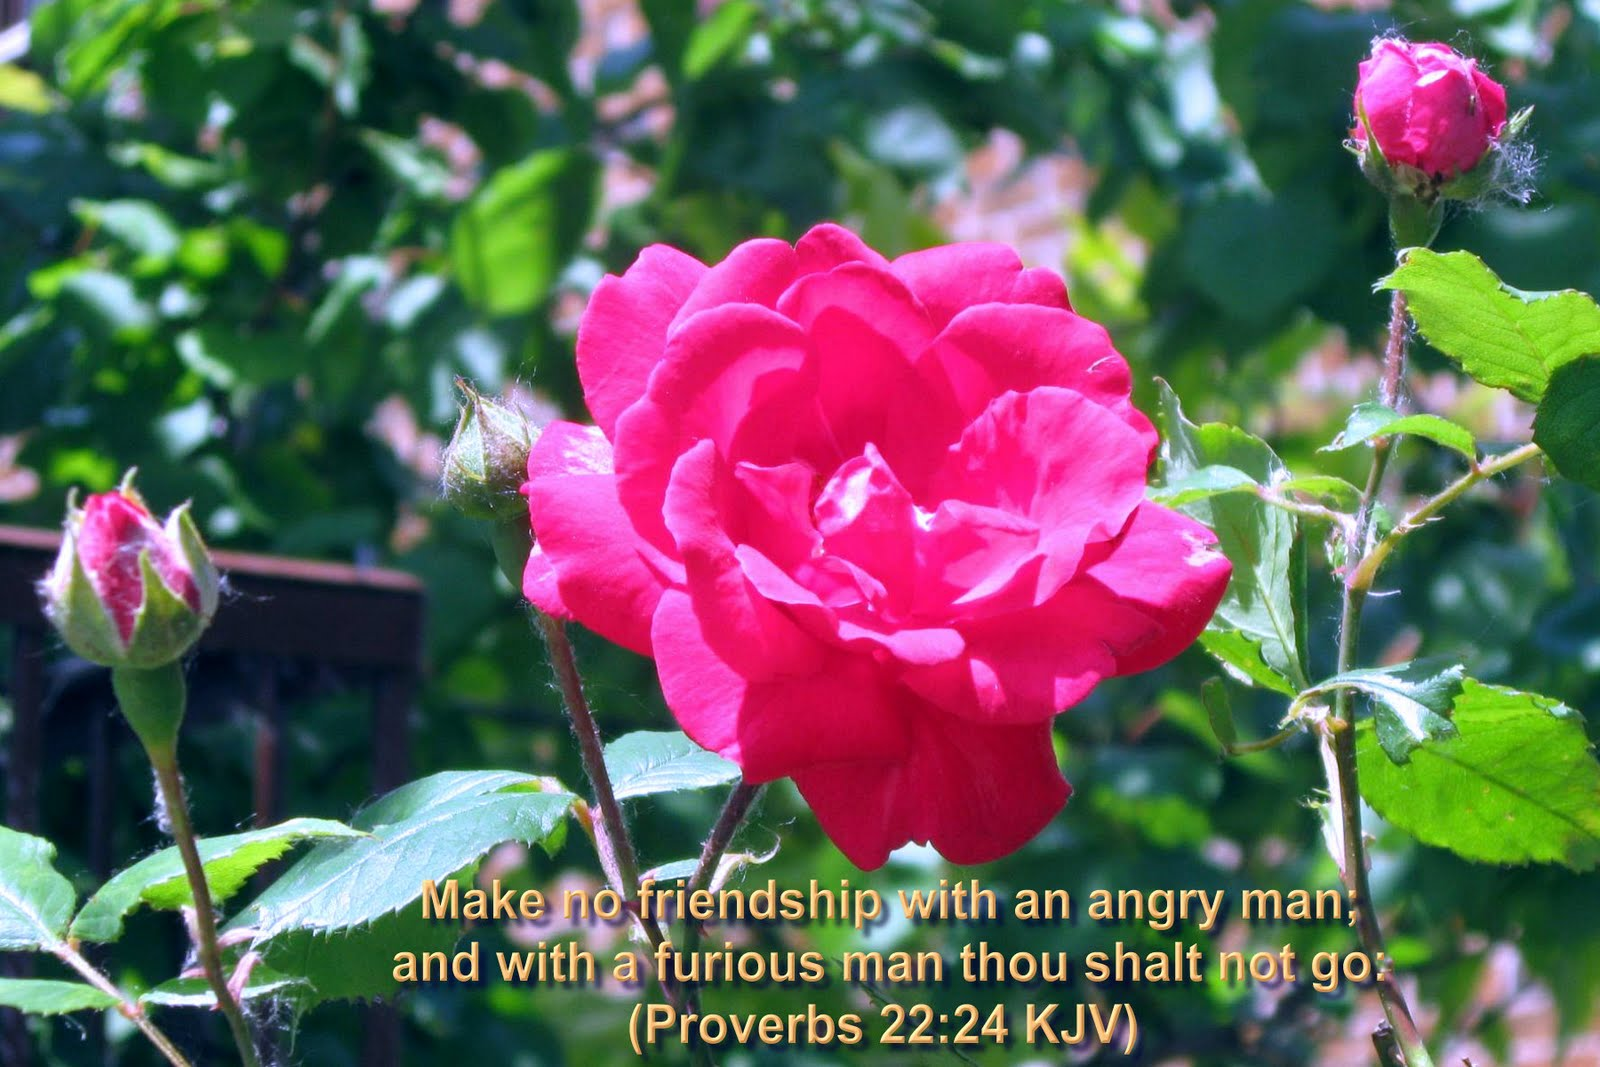 Bible Versed In Scenic Natural Flowers Wallpaper Christian Wallpapers With Bible Verses 1600x1067 Download Hd Wallpaper Wallpapertip